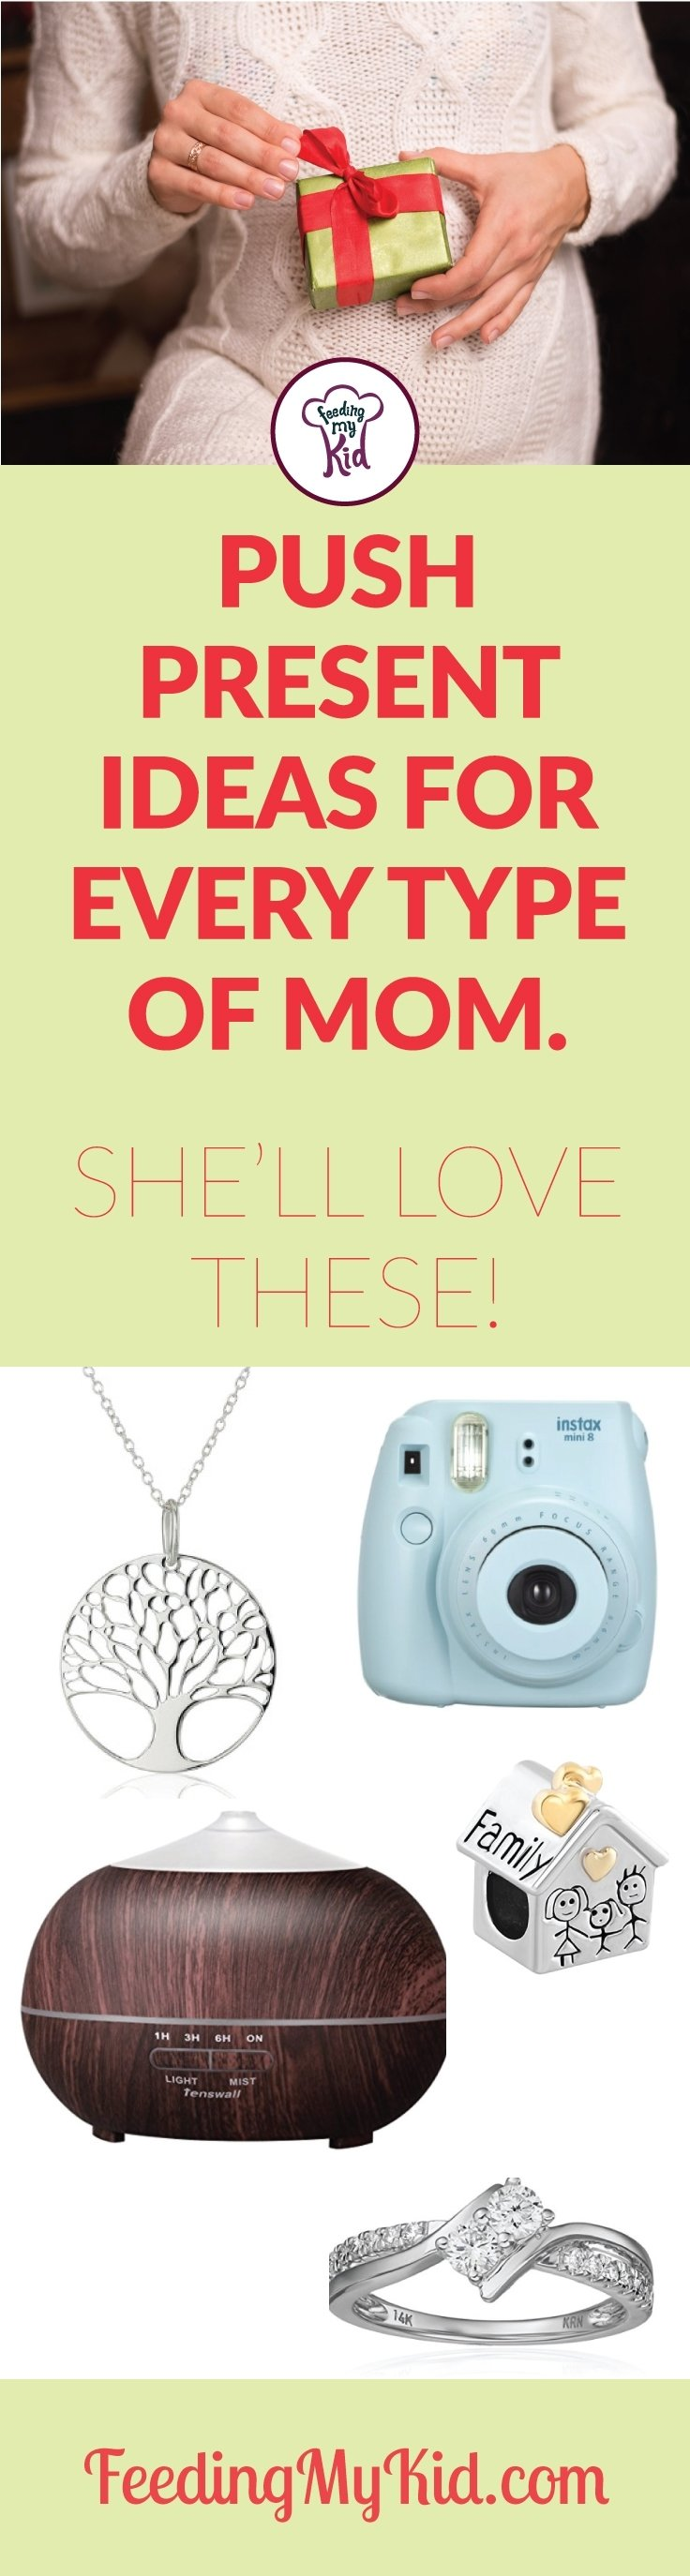 10 Awesome Push Gift Ideas For Wife push present ideas for every type of mom shell love these 1 2020